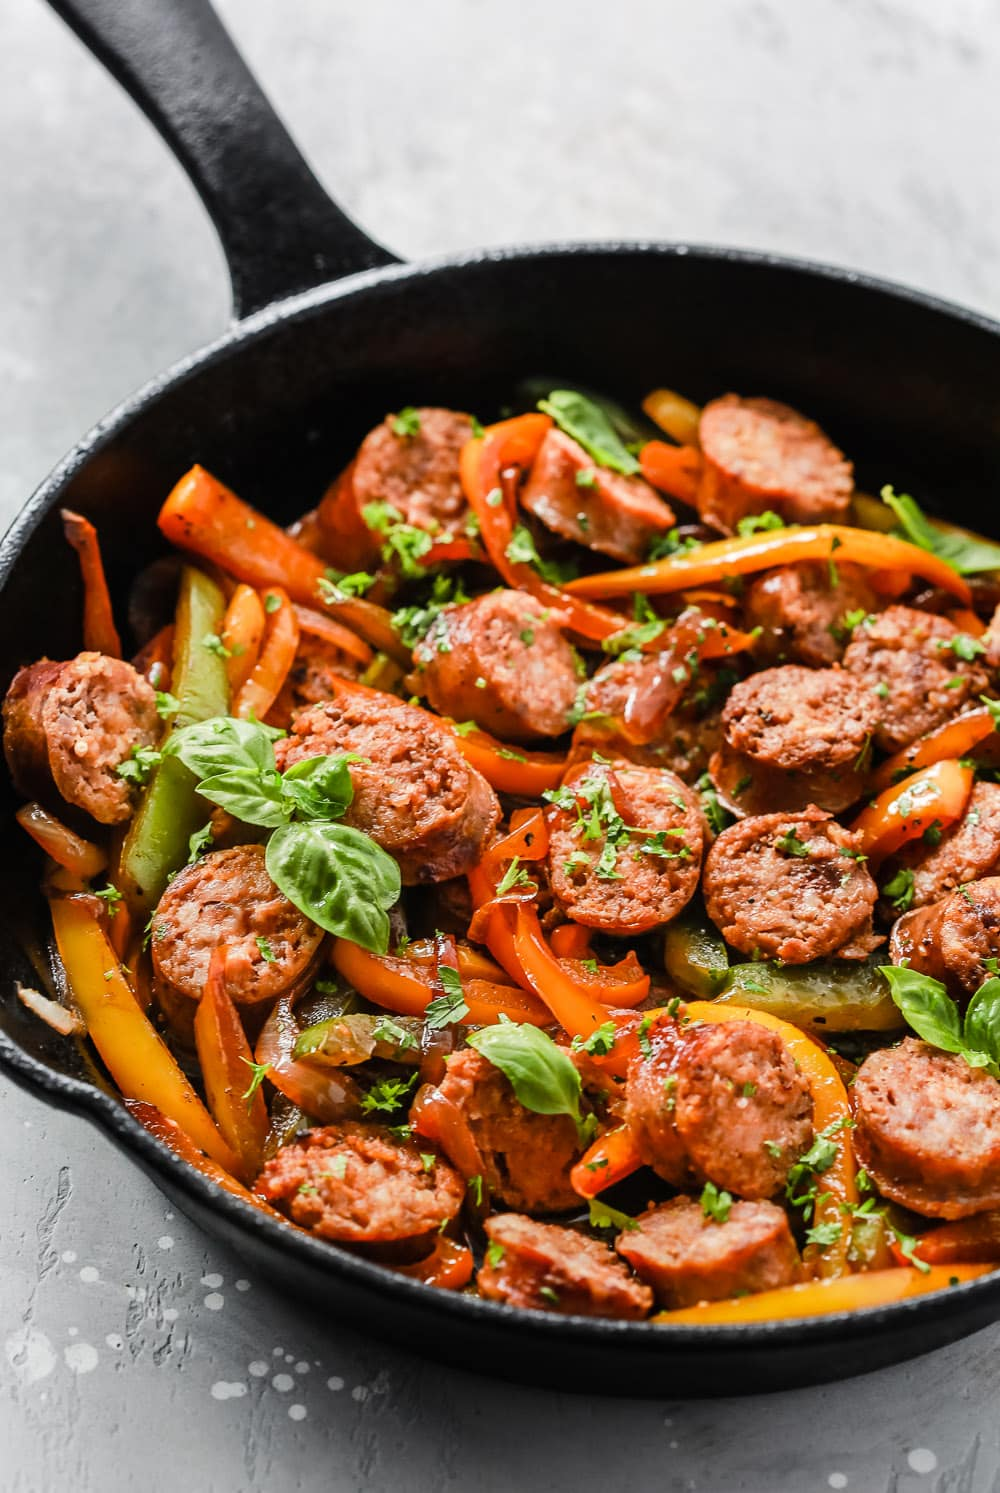 Italian Sausage, Onions and Peppers Skillet in a close-up shot